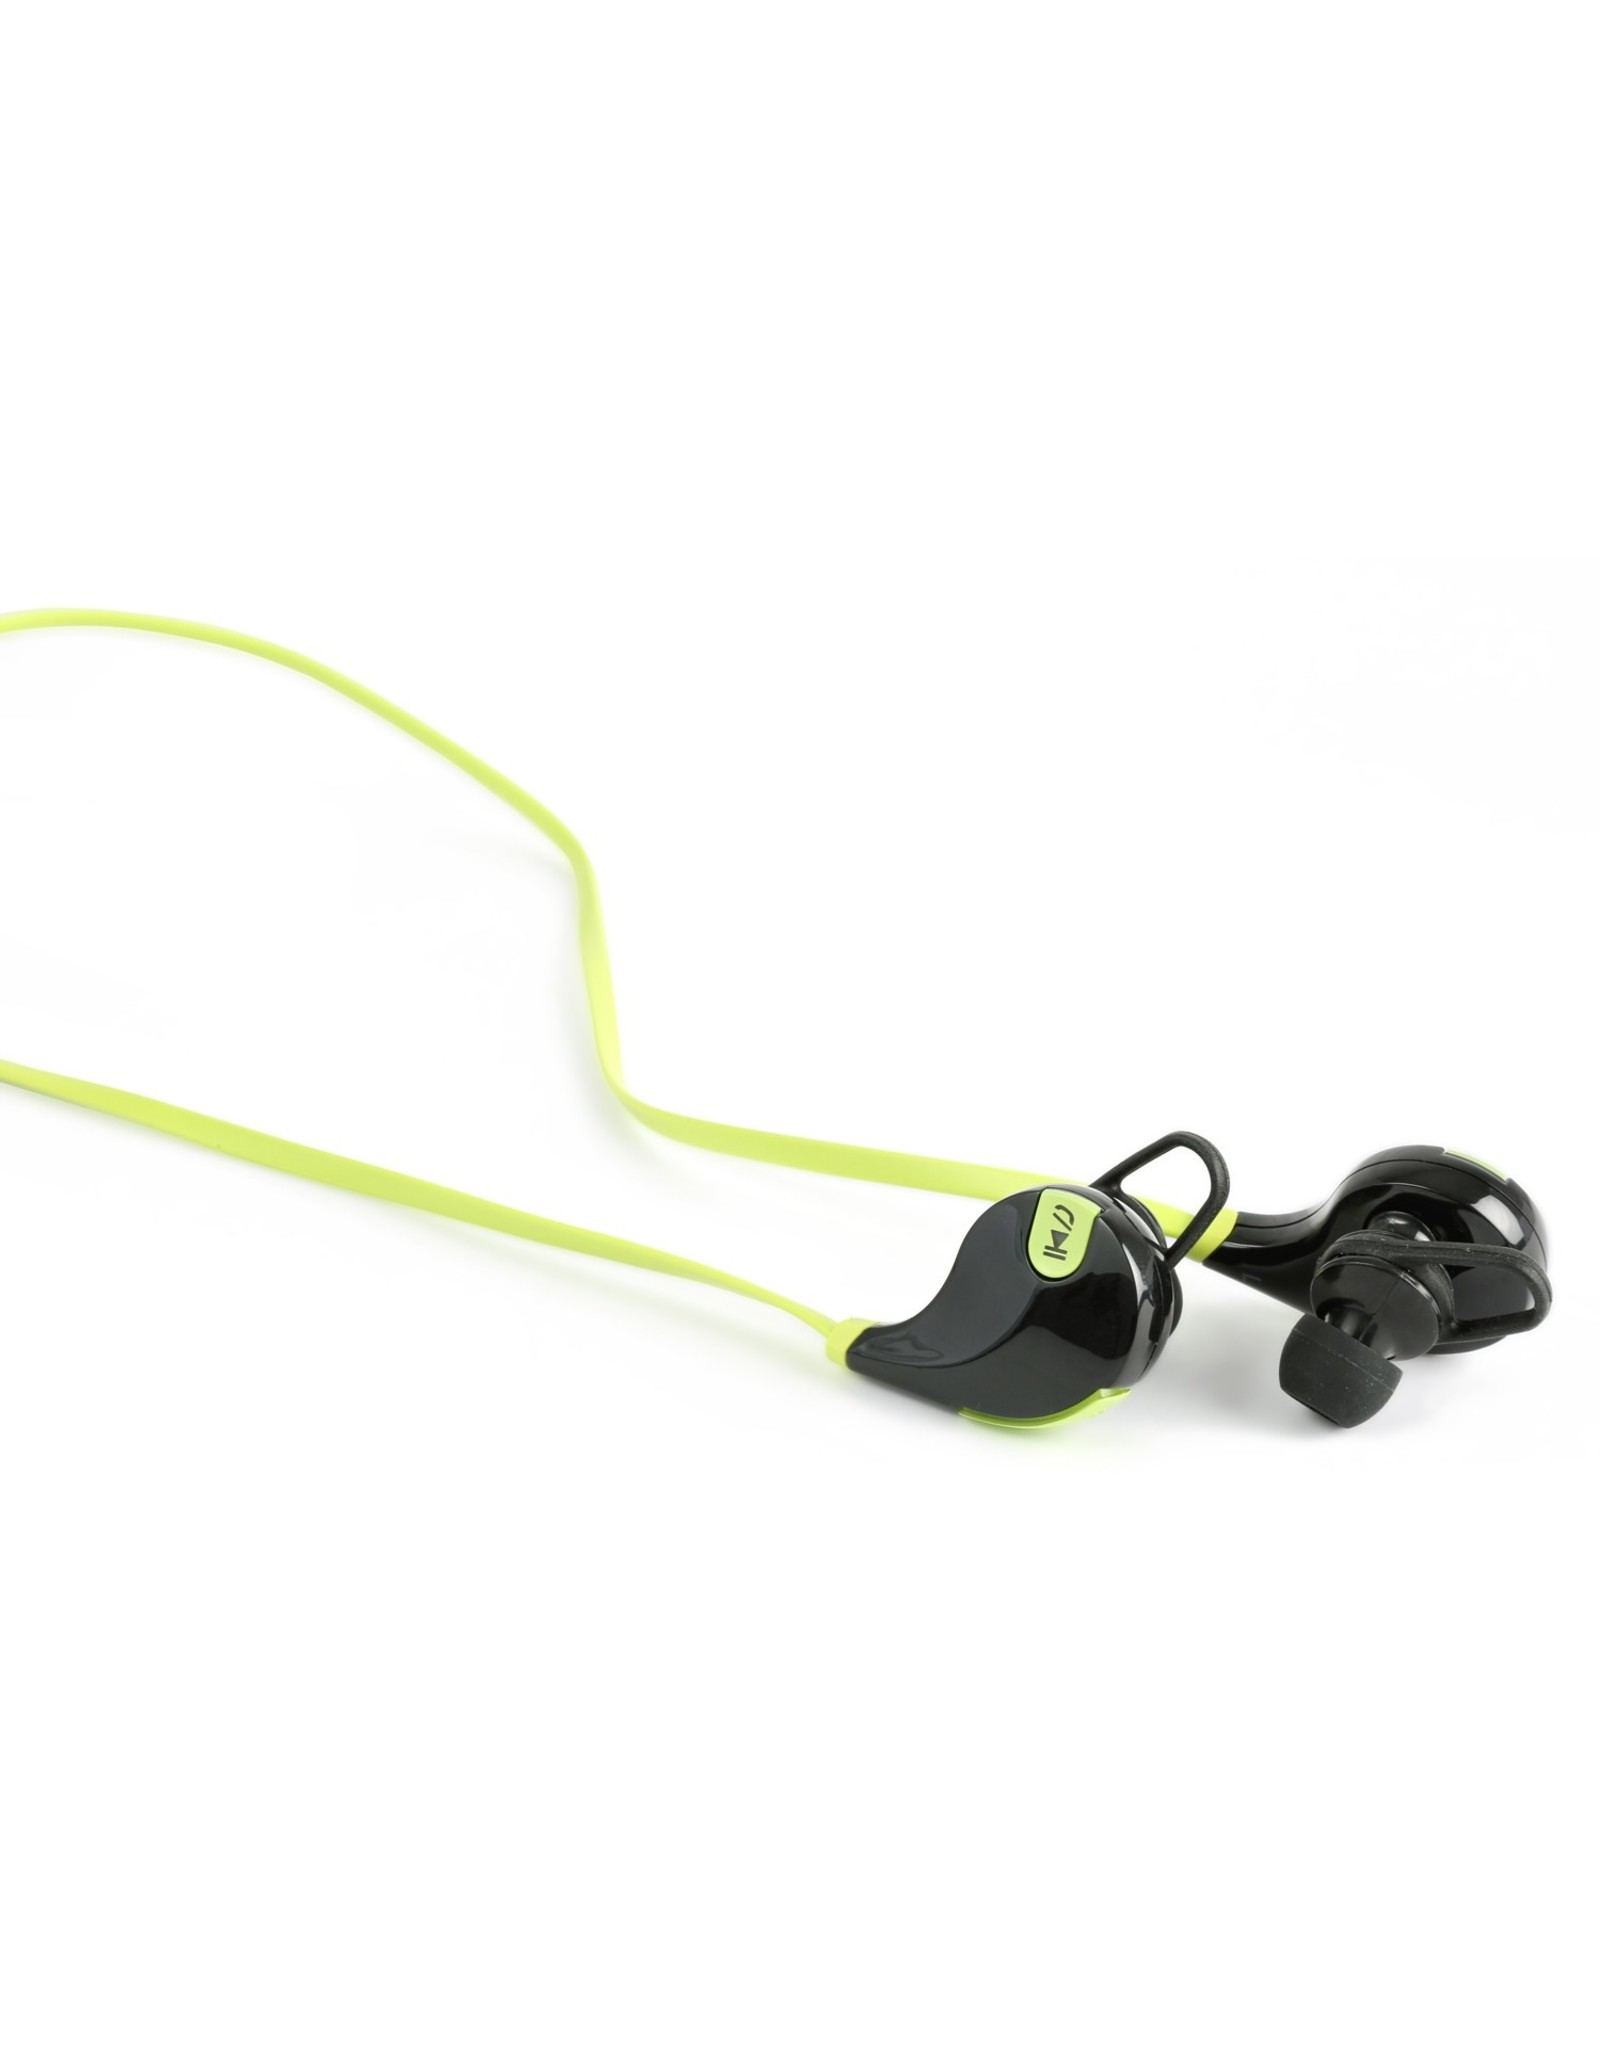 HX1 Bluetooth Stereo Headset